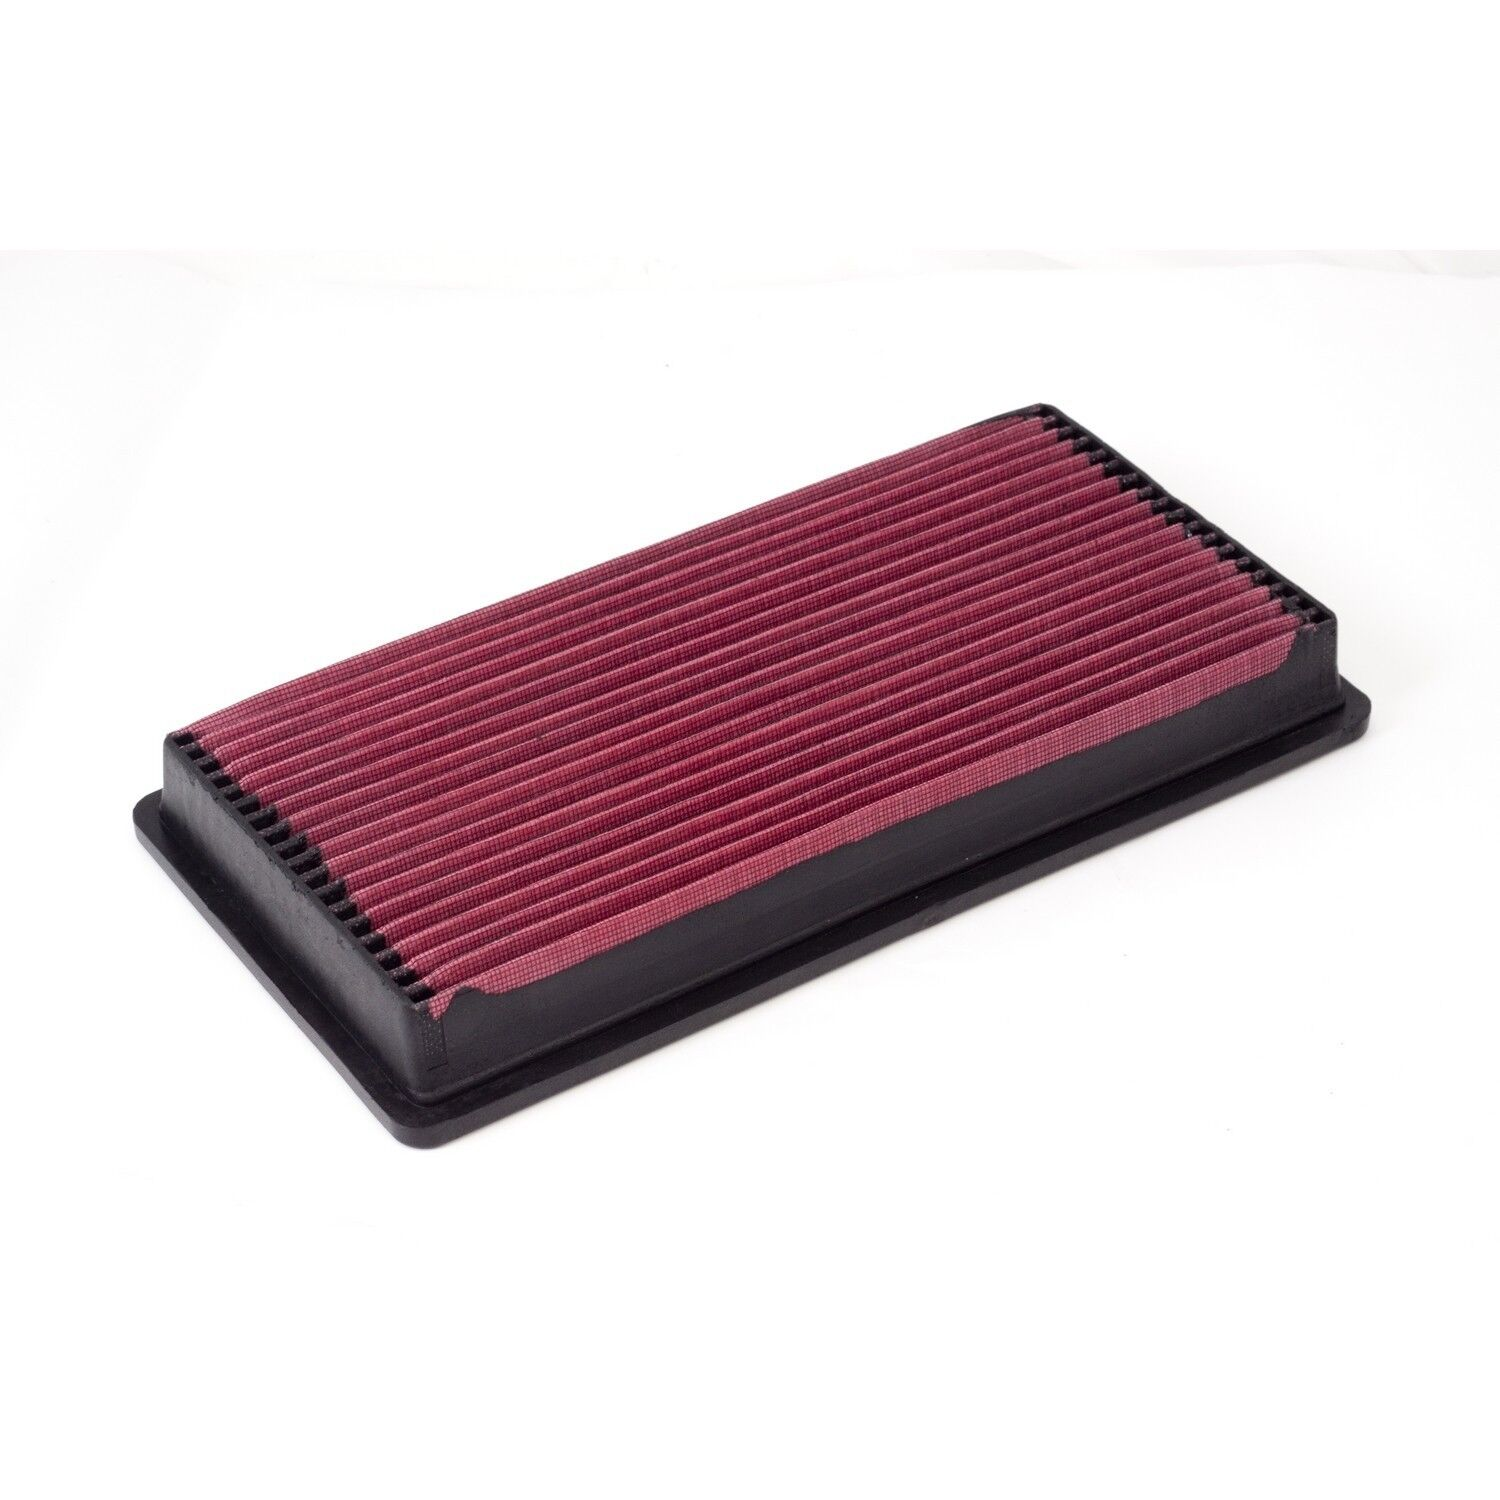 Air Filter Synthetic Jeep Wrangler Yj 87-95 4.0L  X 17752.03